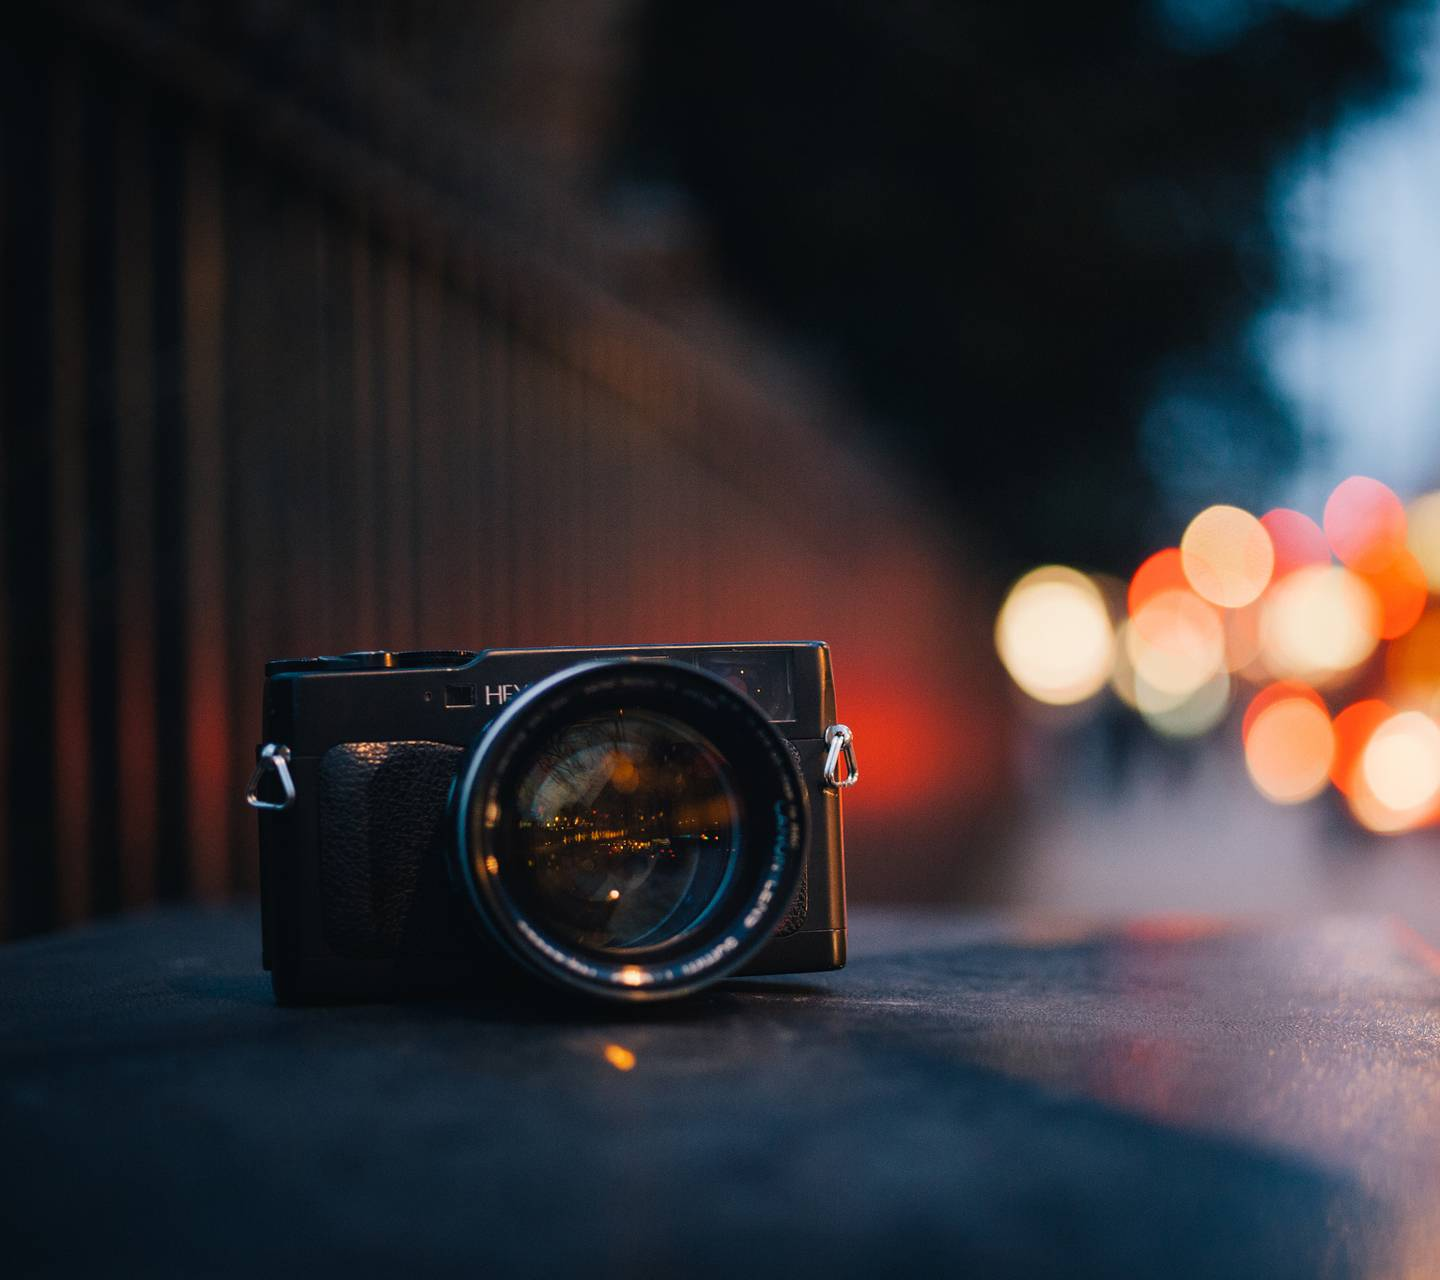 City photographing